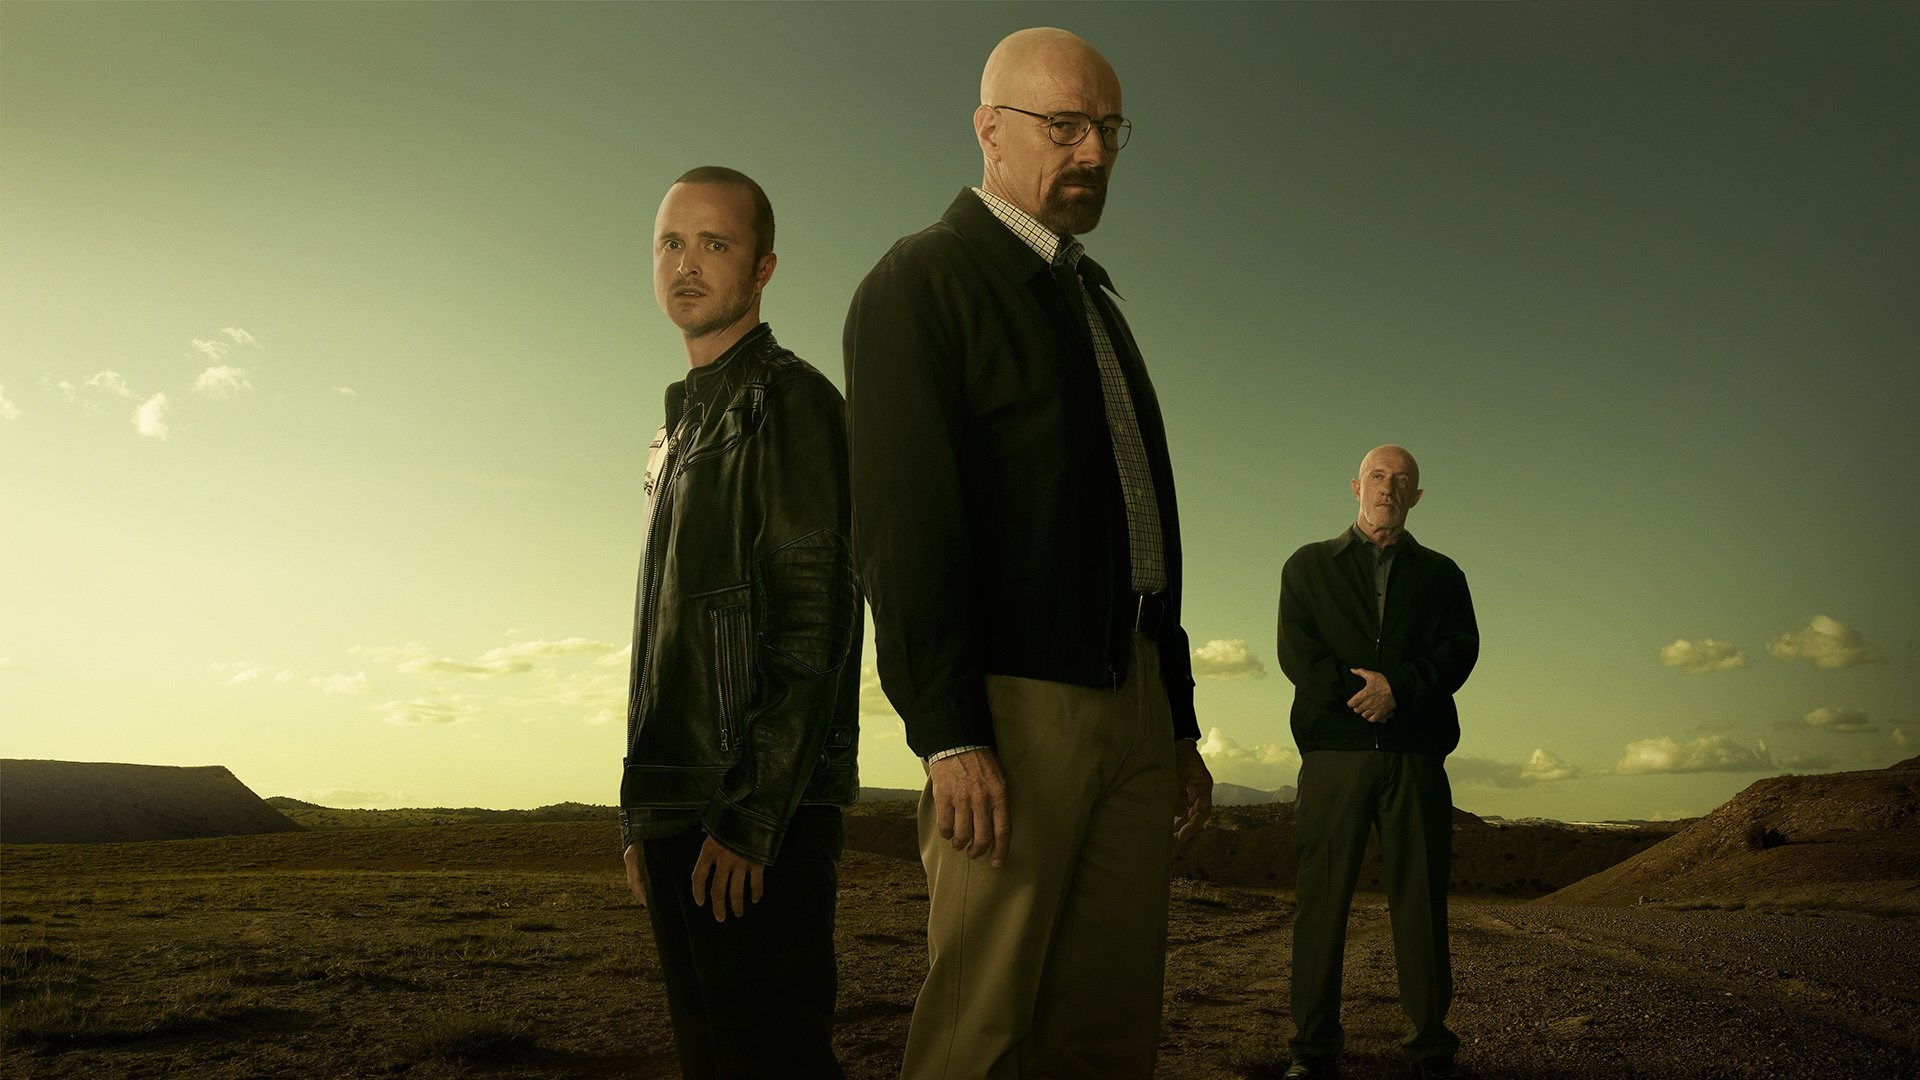 1920x1080-HD-Widescreen-breaking-bad-wallpaper-wpc900848